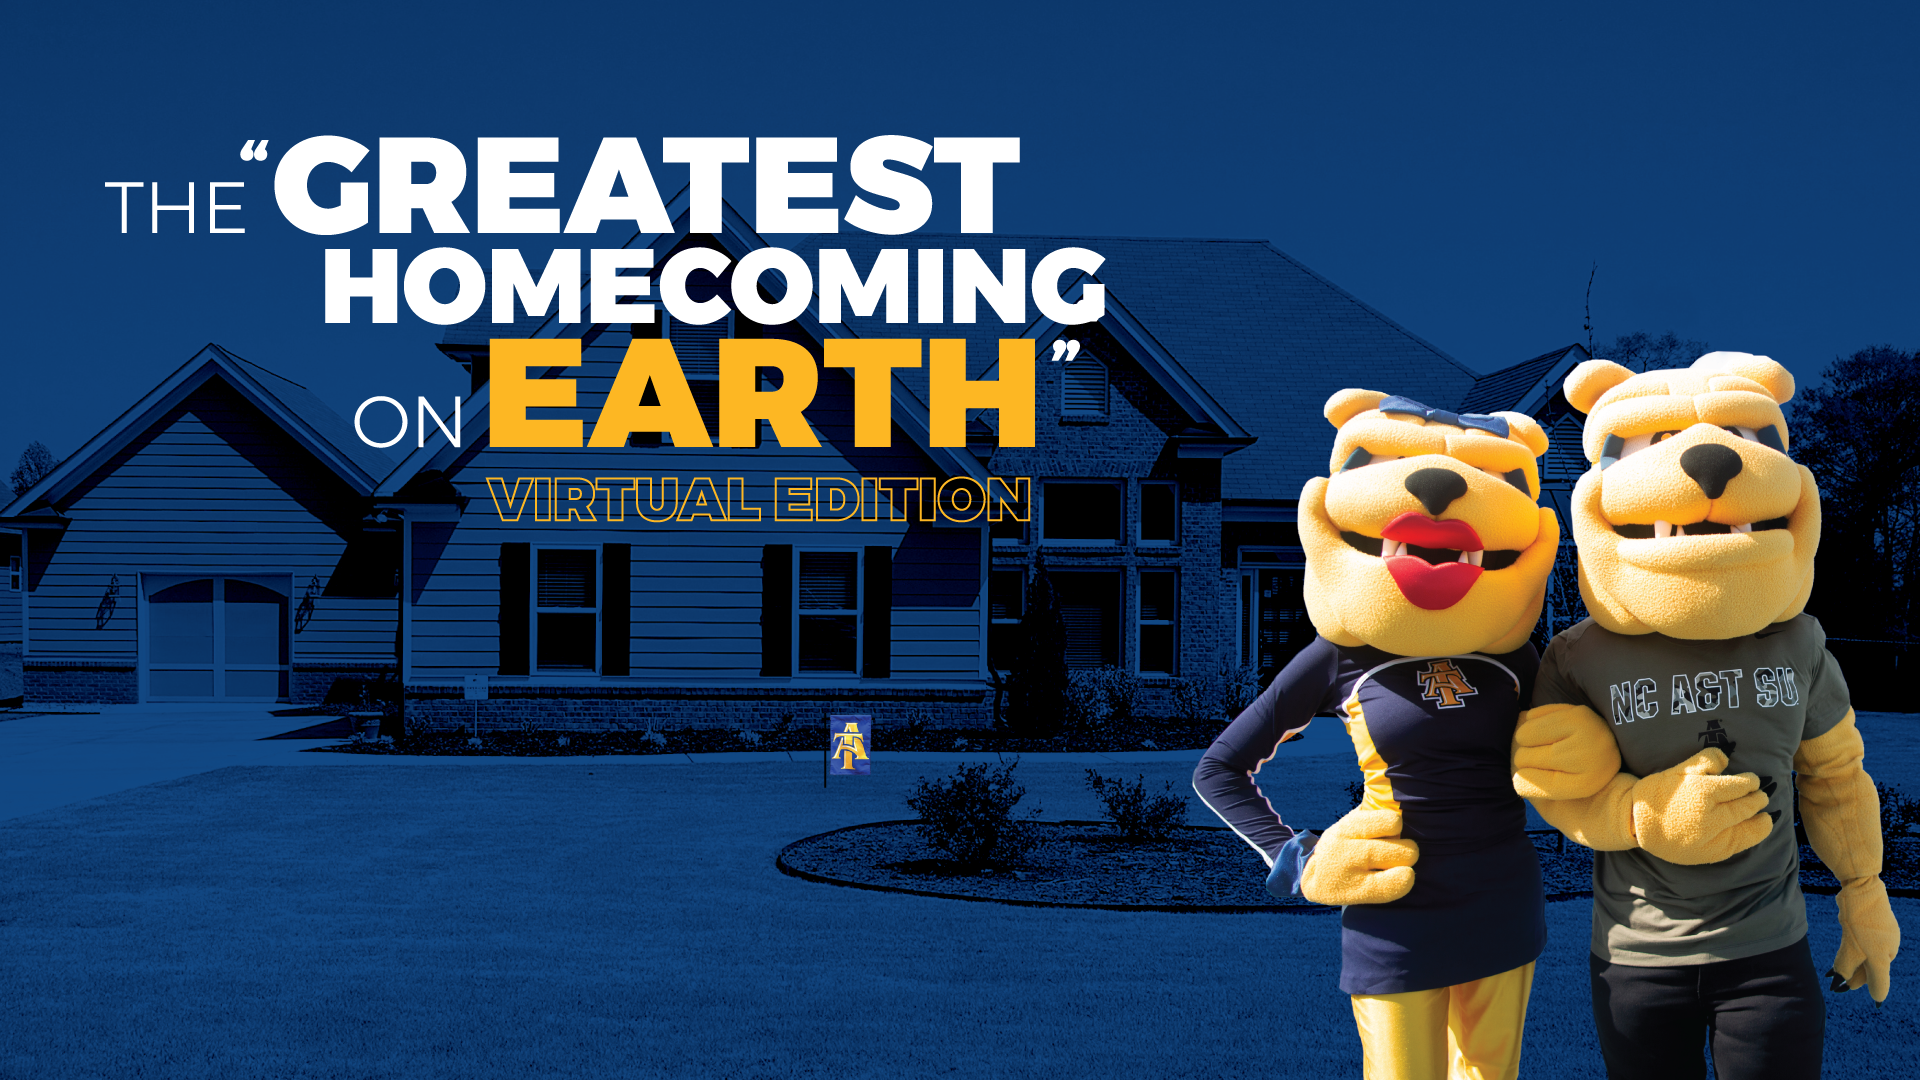 Image of A&T mascots in front of a home.